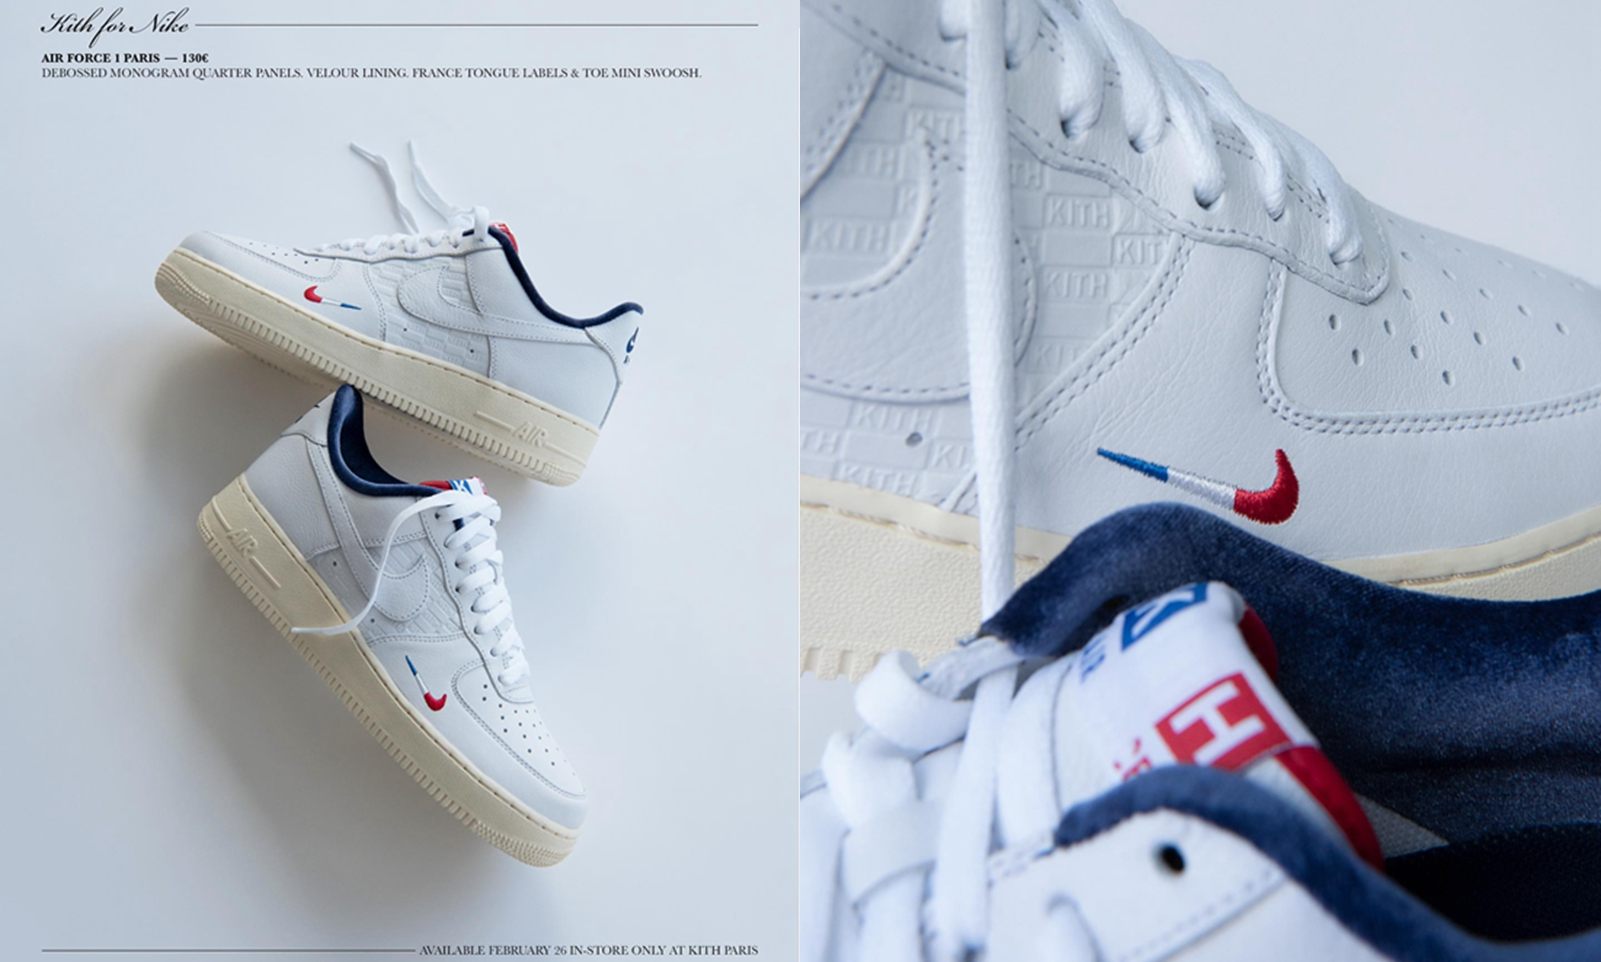 KITH 推出巴黎门店限定 Nike Air Force 1